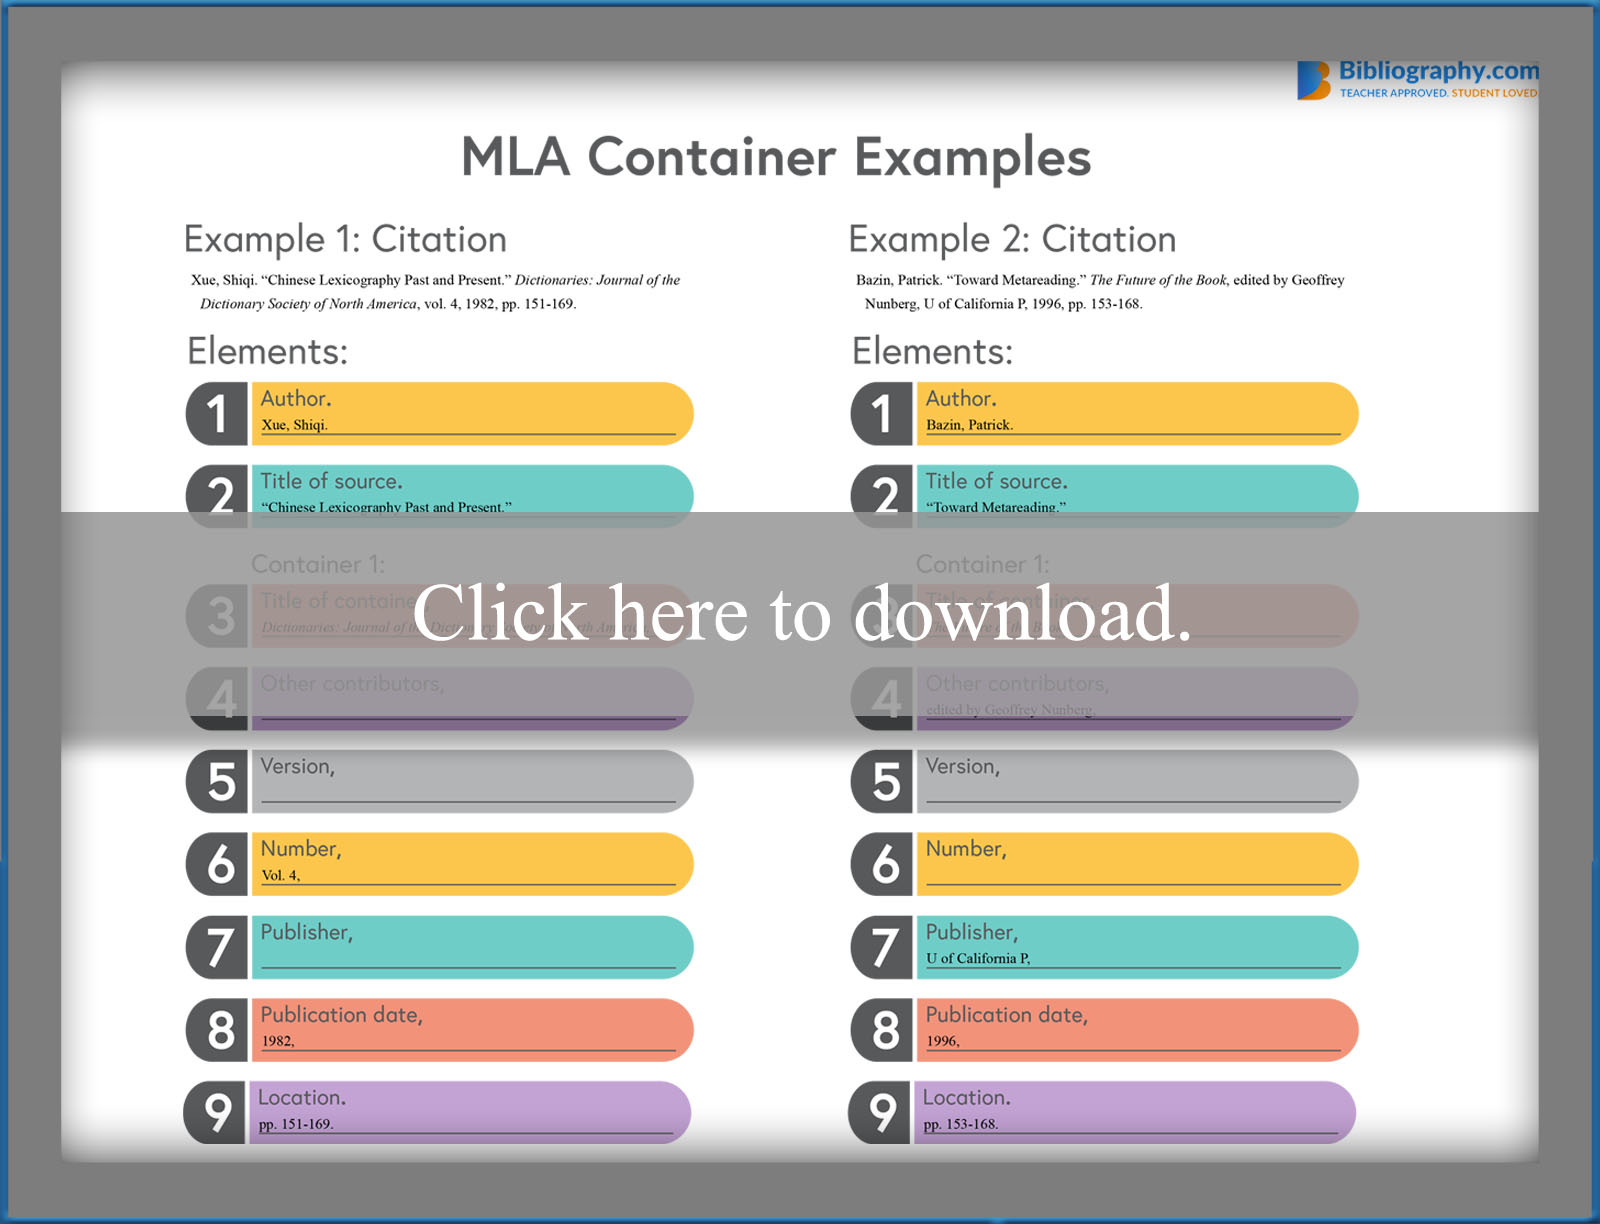 MLA Container Example